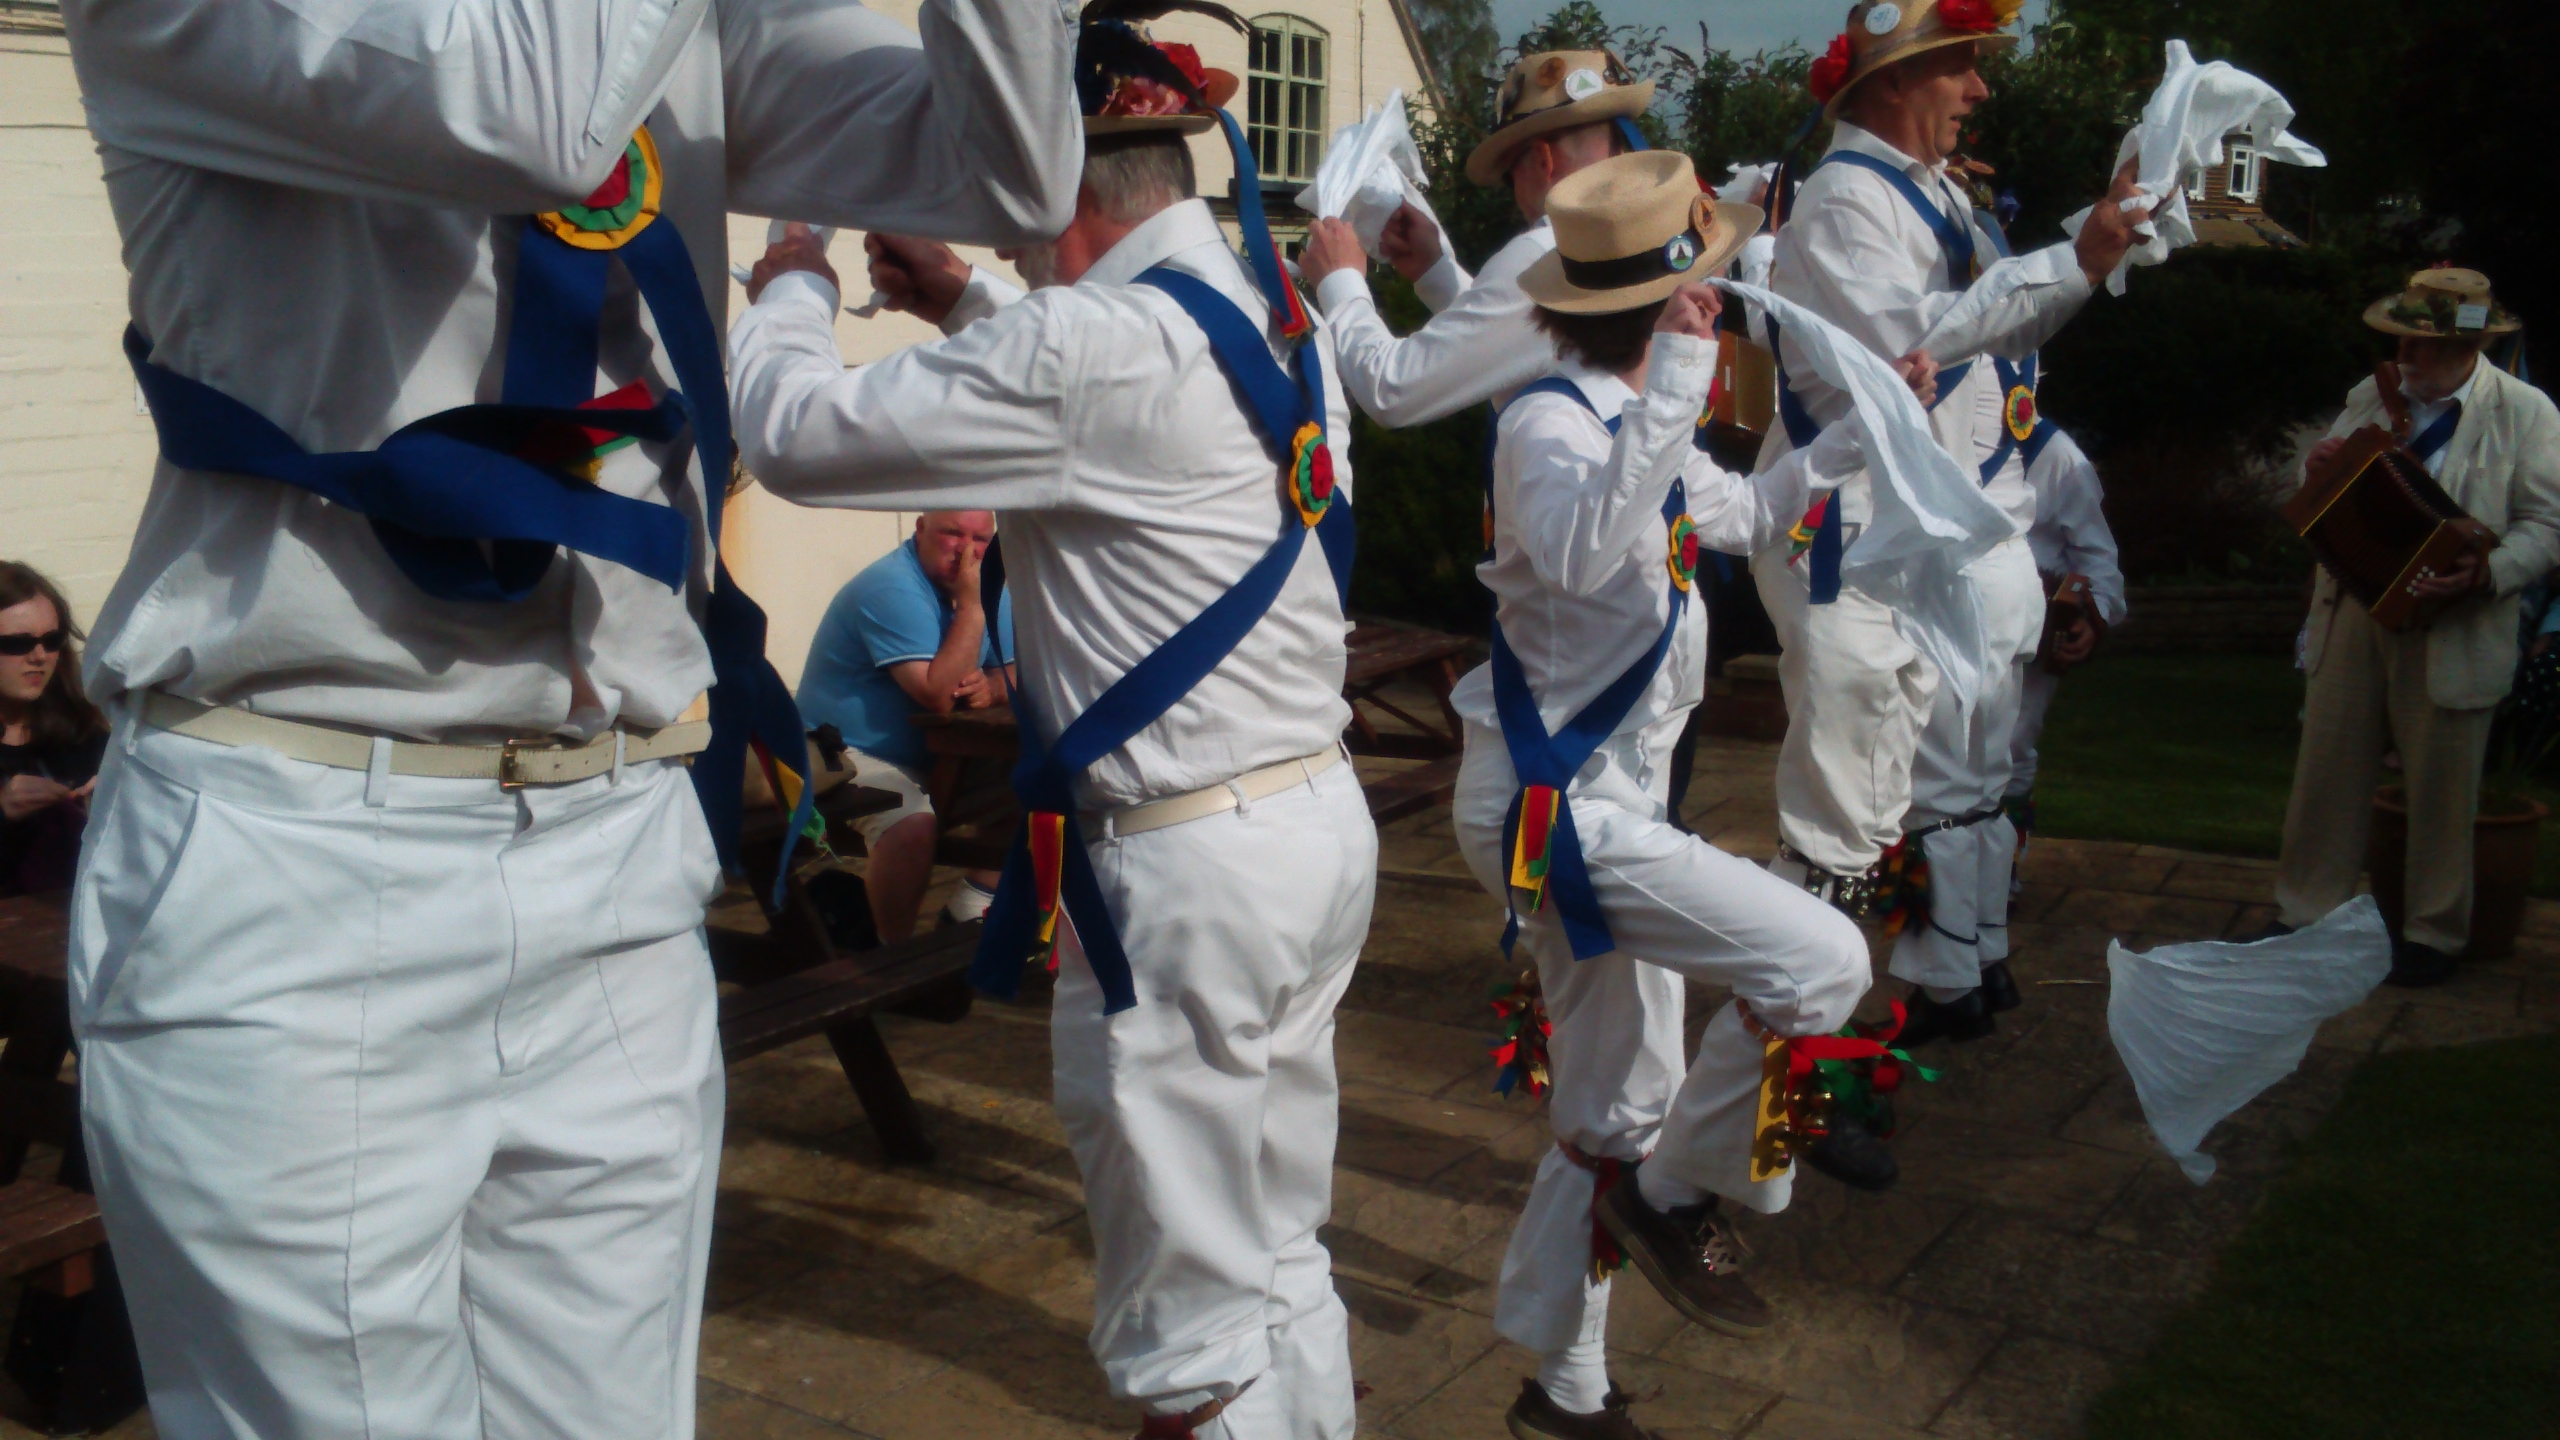 Dancing at The Mary Arden in Wilmcote